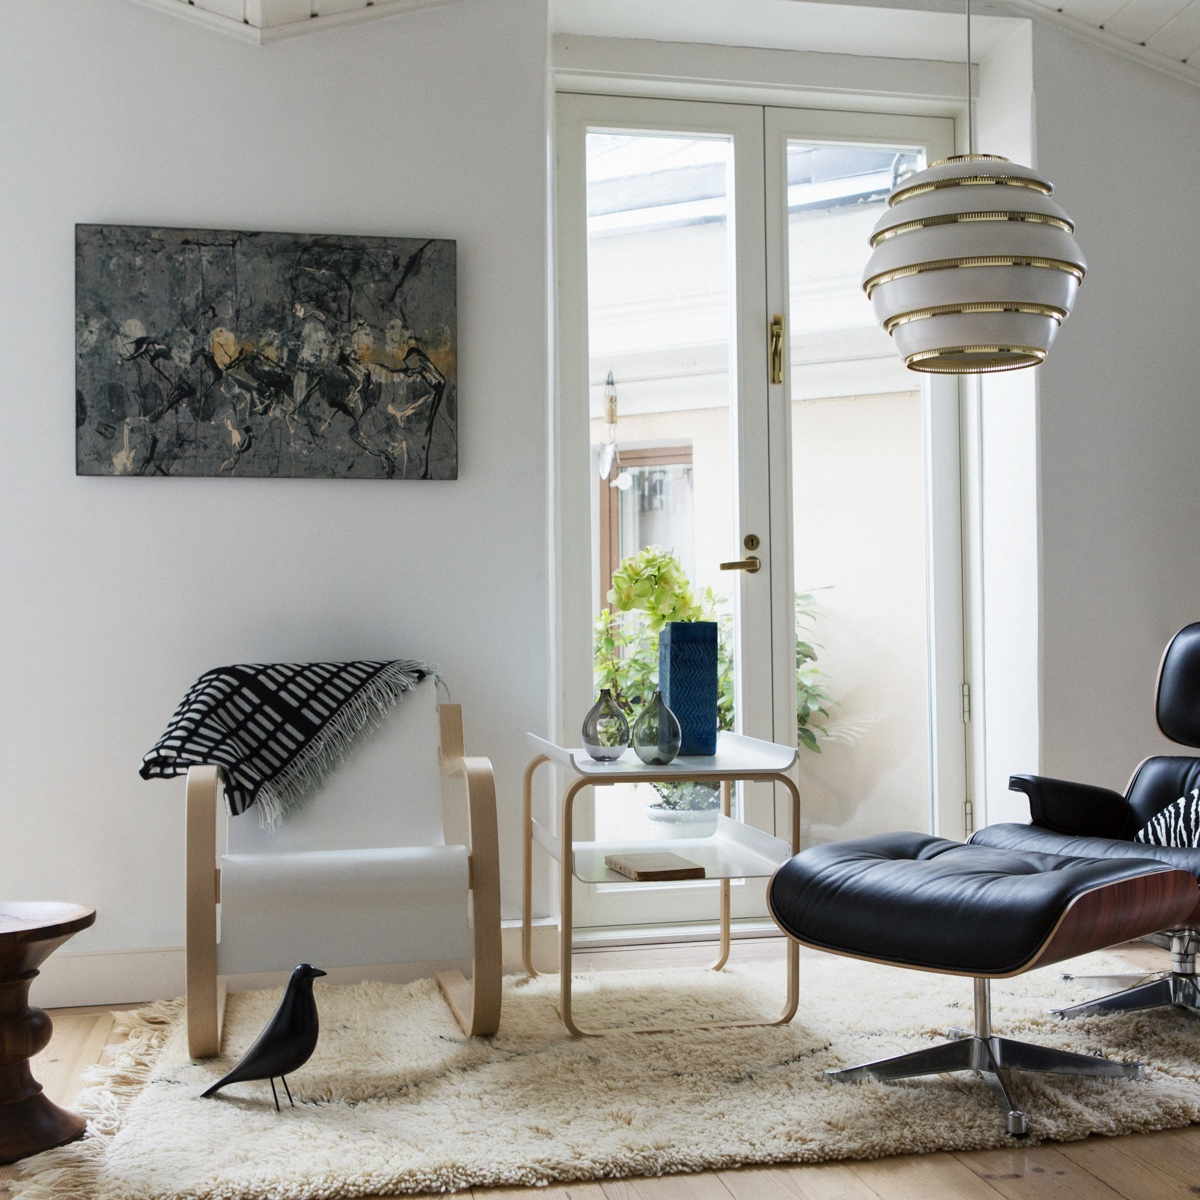 Alvar Aalto'sdesignsshown alongsideVitra design pieces (Vitra acquired Artek in 2013). Aalto designs from left to right: Armchair 42 (1932), Table 915 (1932) and Pendant Light A331 (1953).